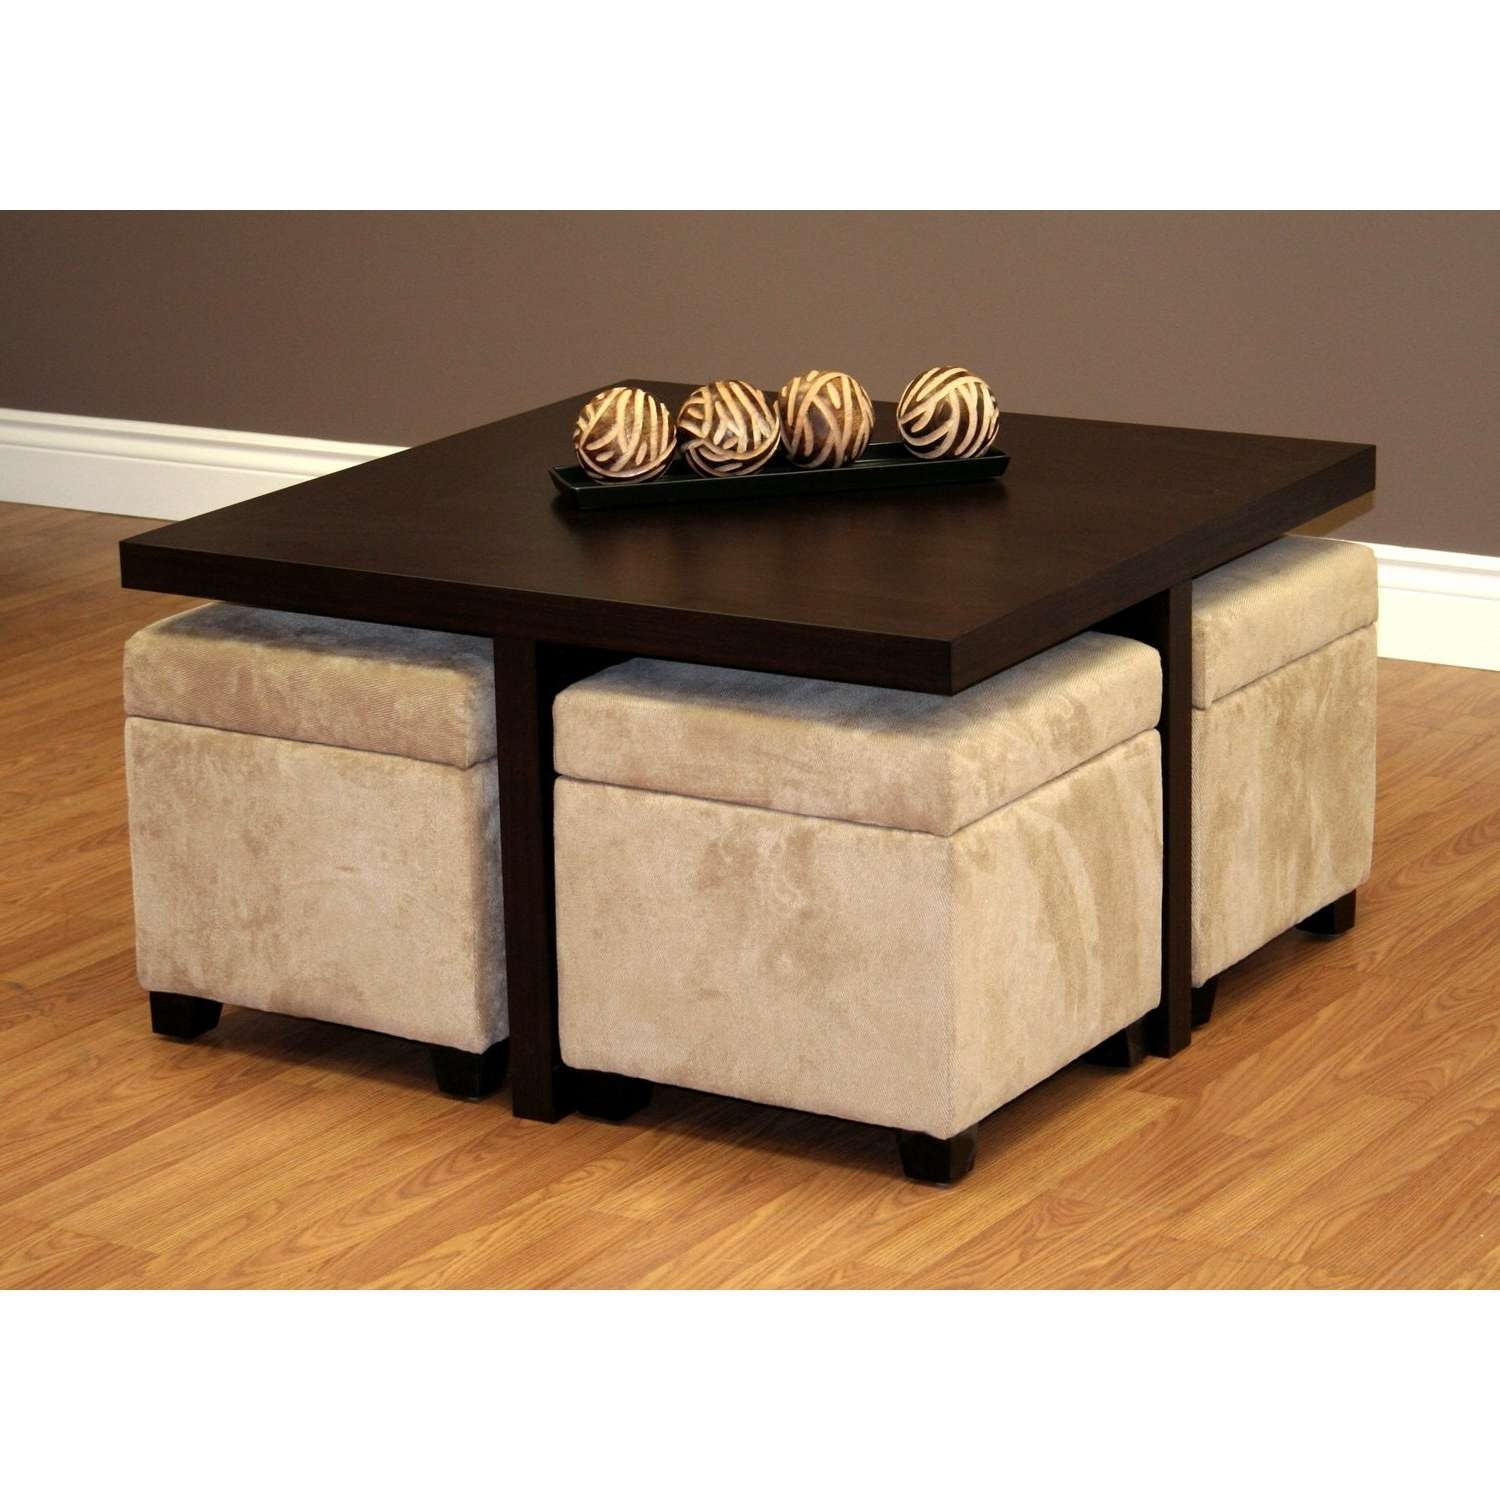 Coffee Table : Amazing Ottoman Coffee Table Amazing Coffee Table Regarding Popular Cheap Coffee Tables With Storage (View 3 of 20)